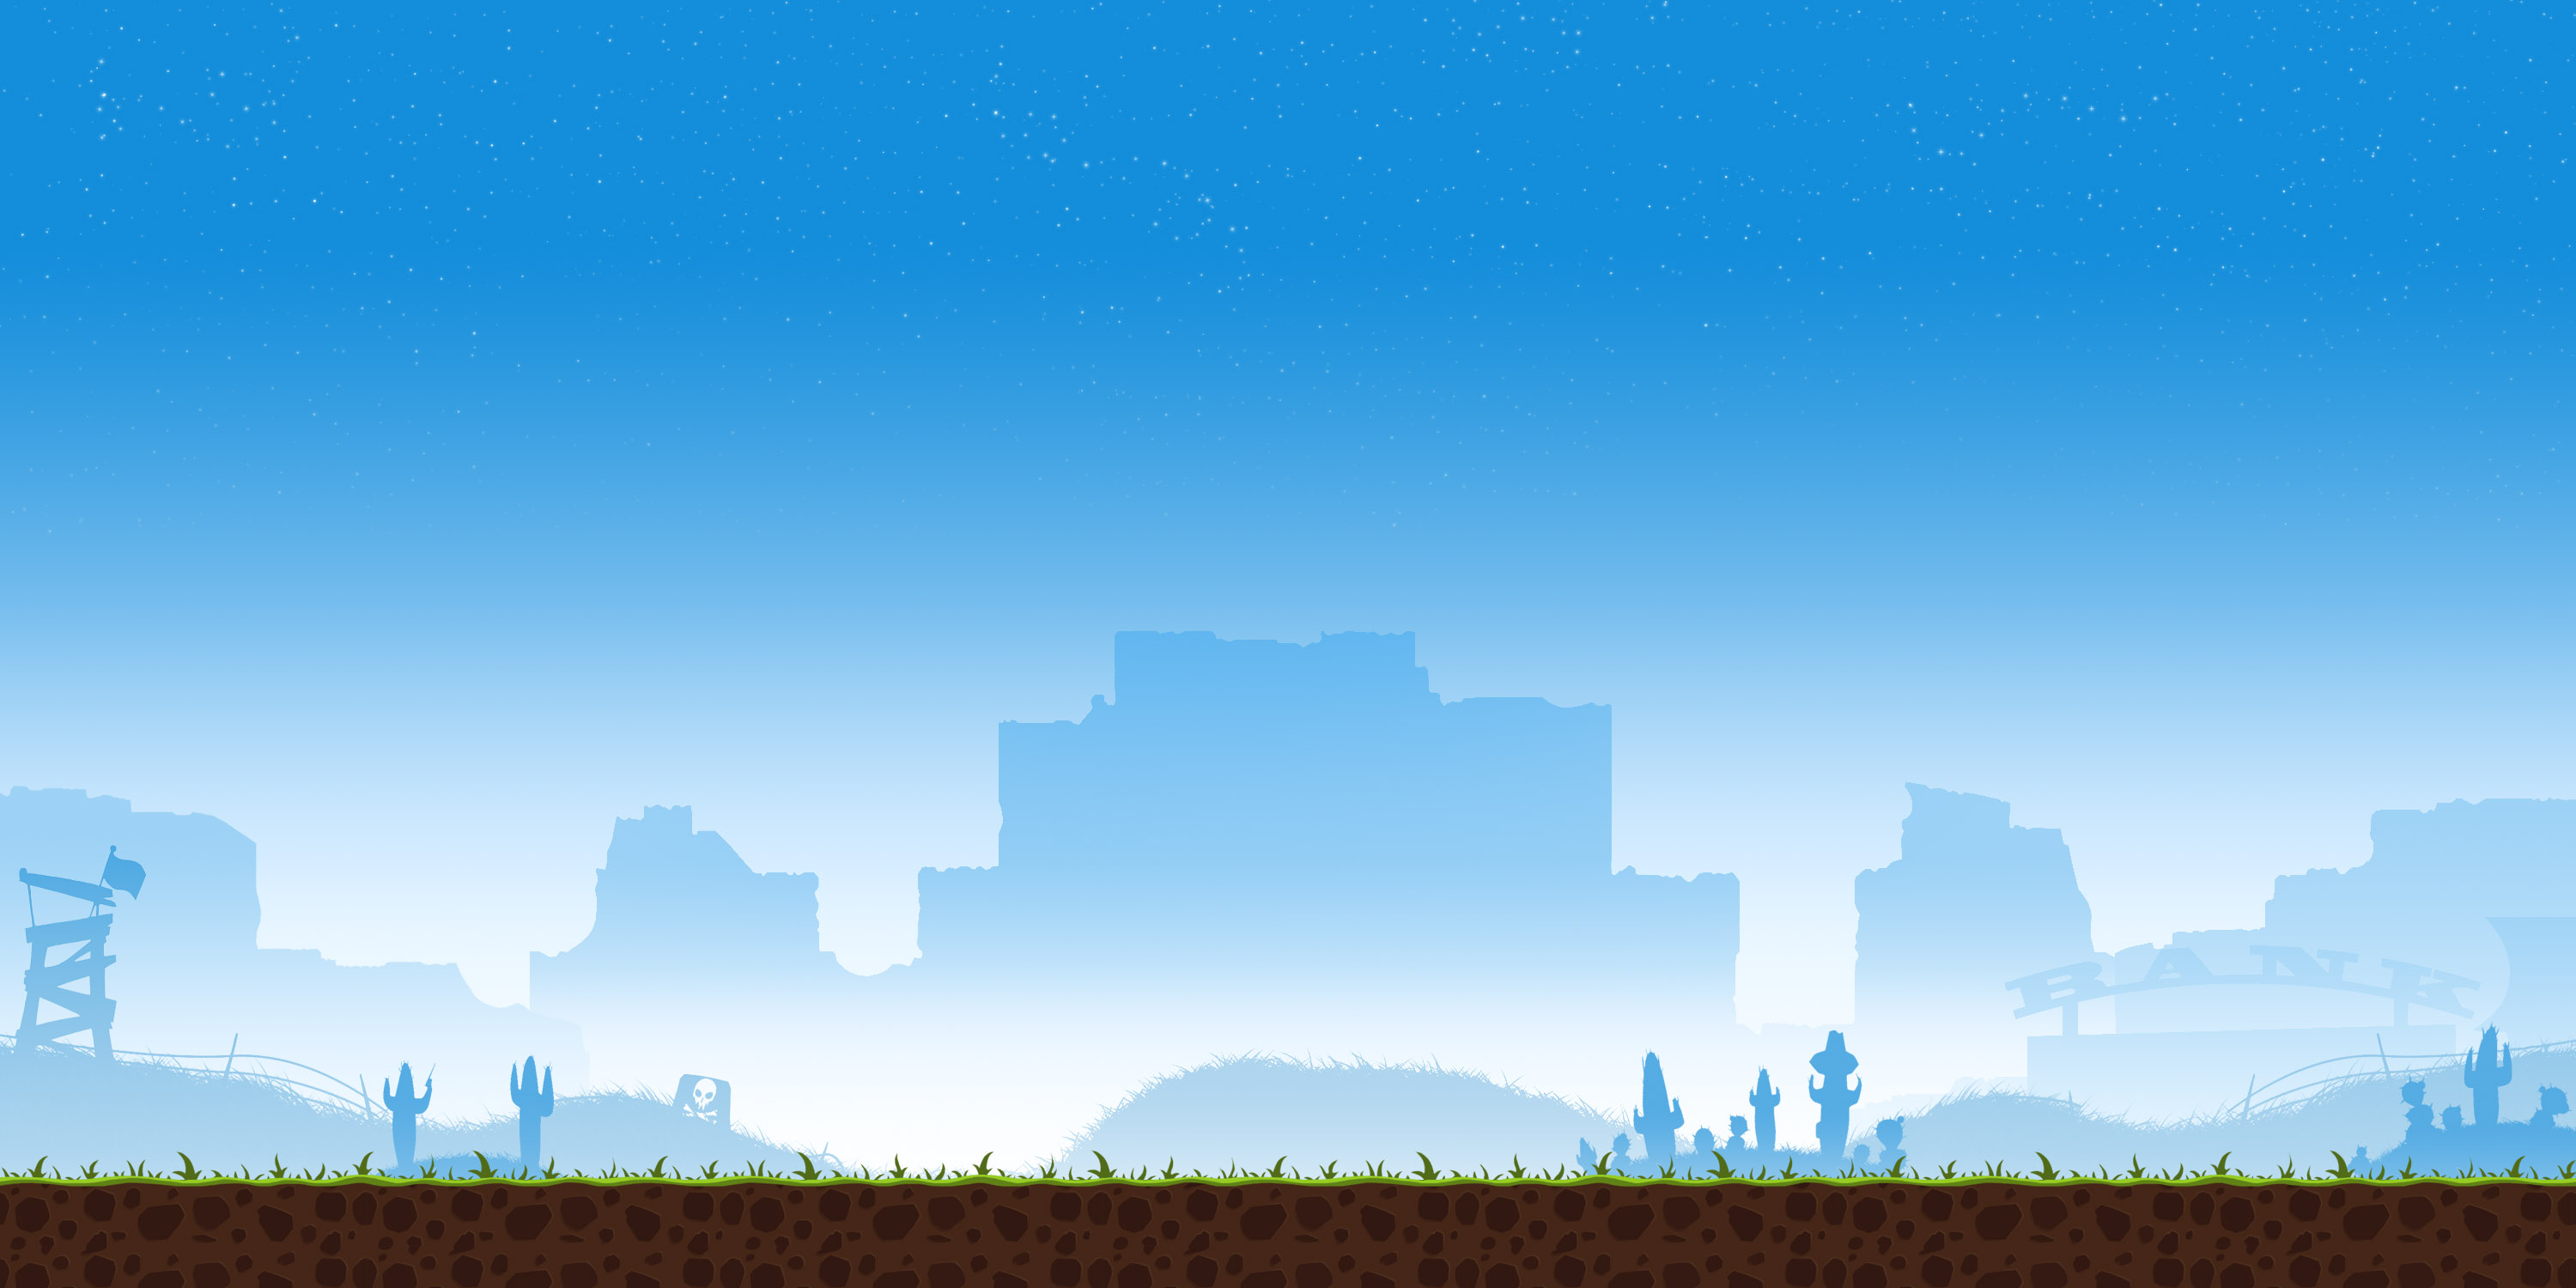 blue and white simple game background #14595